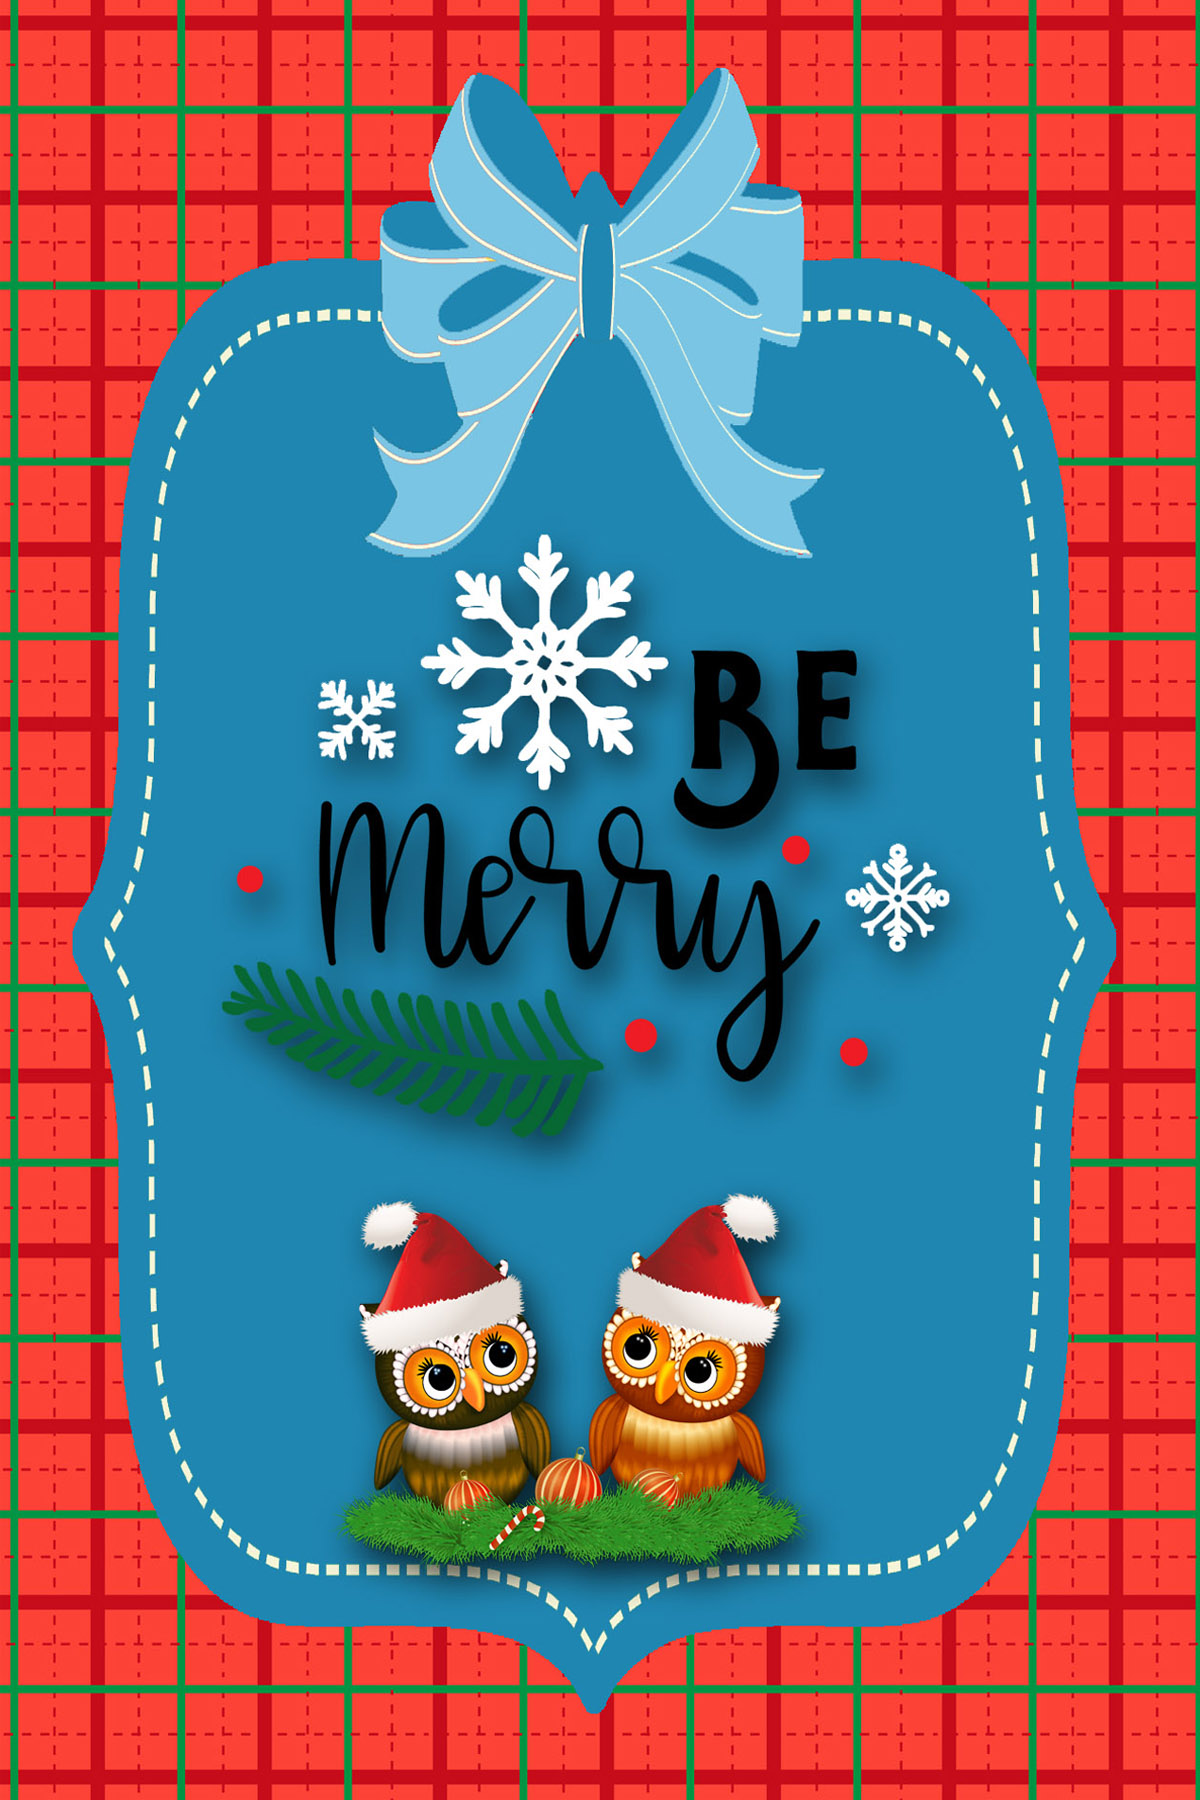 DIGITAL OWL CHRISTMAS CARD, PRINTABLE DIGITAL CHRISTMAS CARD, PHOTO CHRISTMAS CARD, PERSONALIZED CHRISTMAS CARD, HAPPY HOLIDAYS CARD  Back To Products example image 1